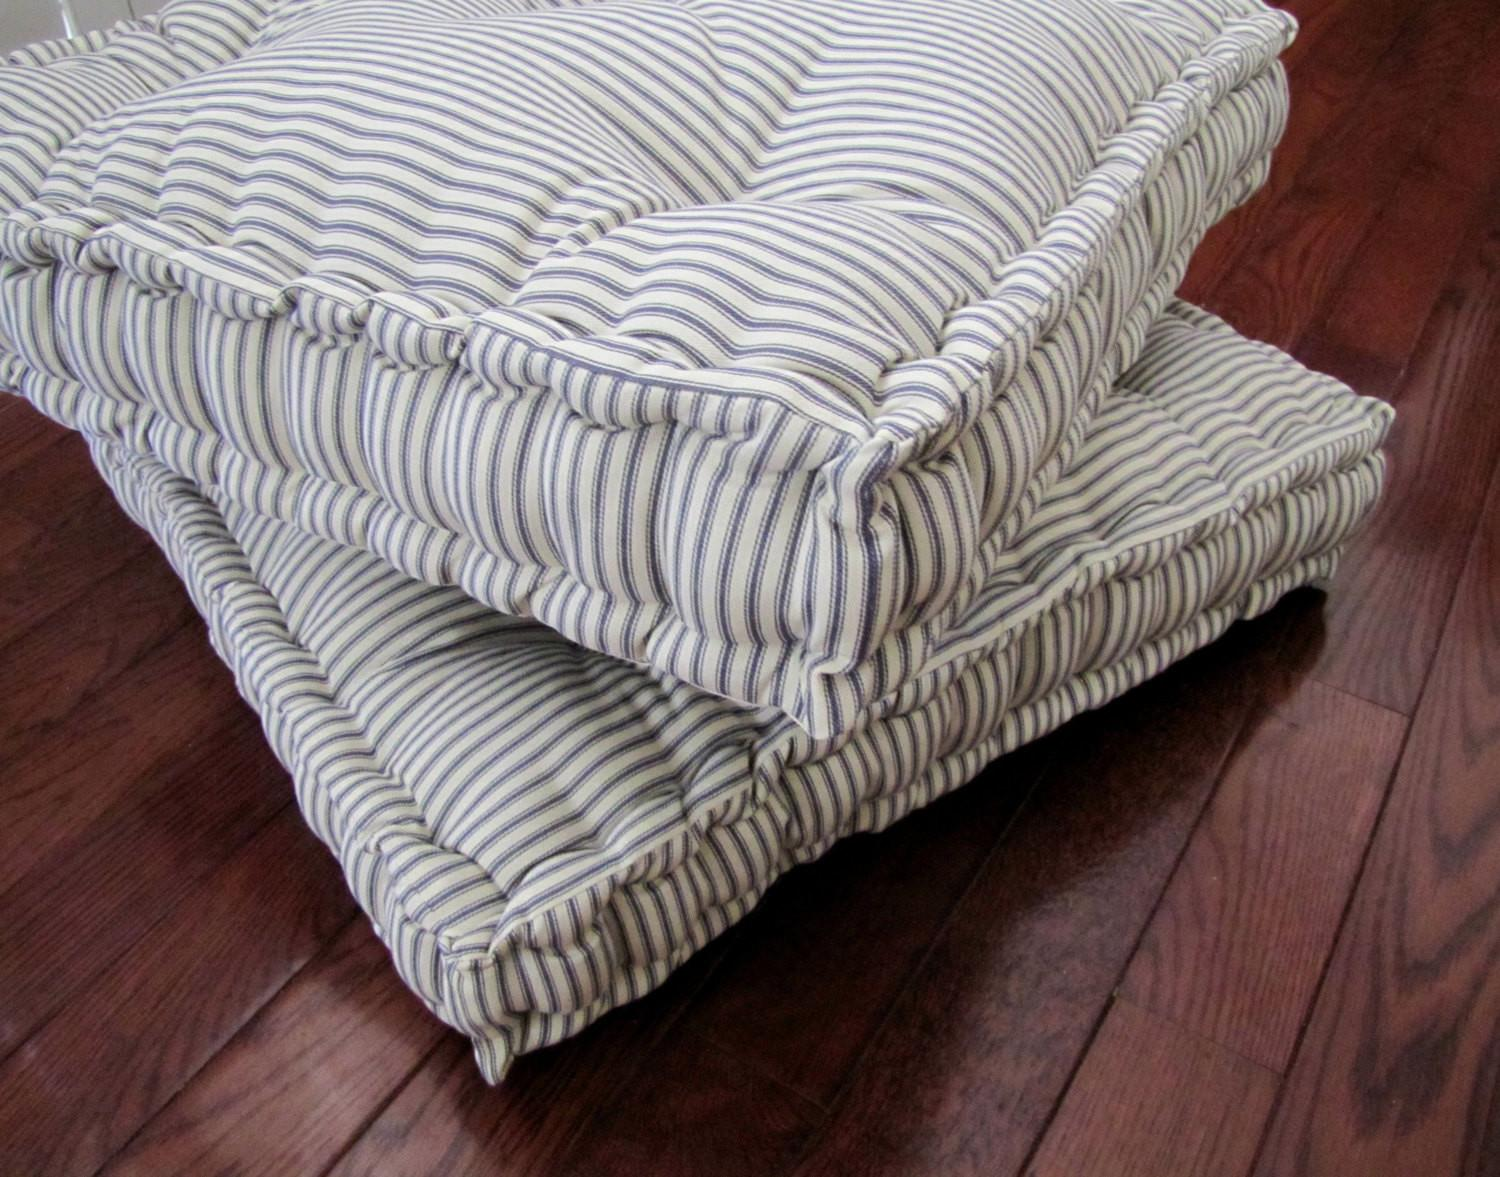 Ticking Floor Pillow Tufted Cushion French